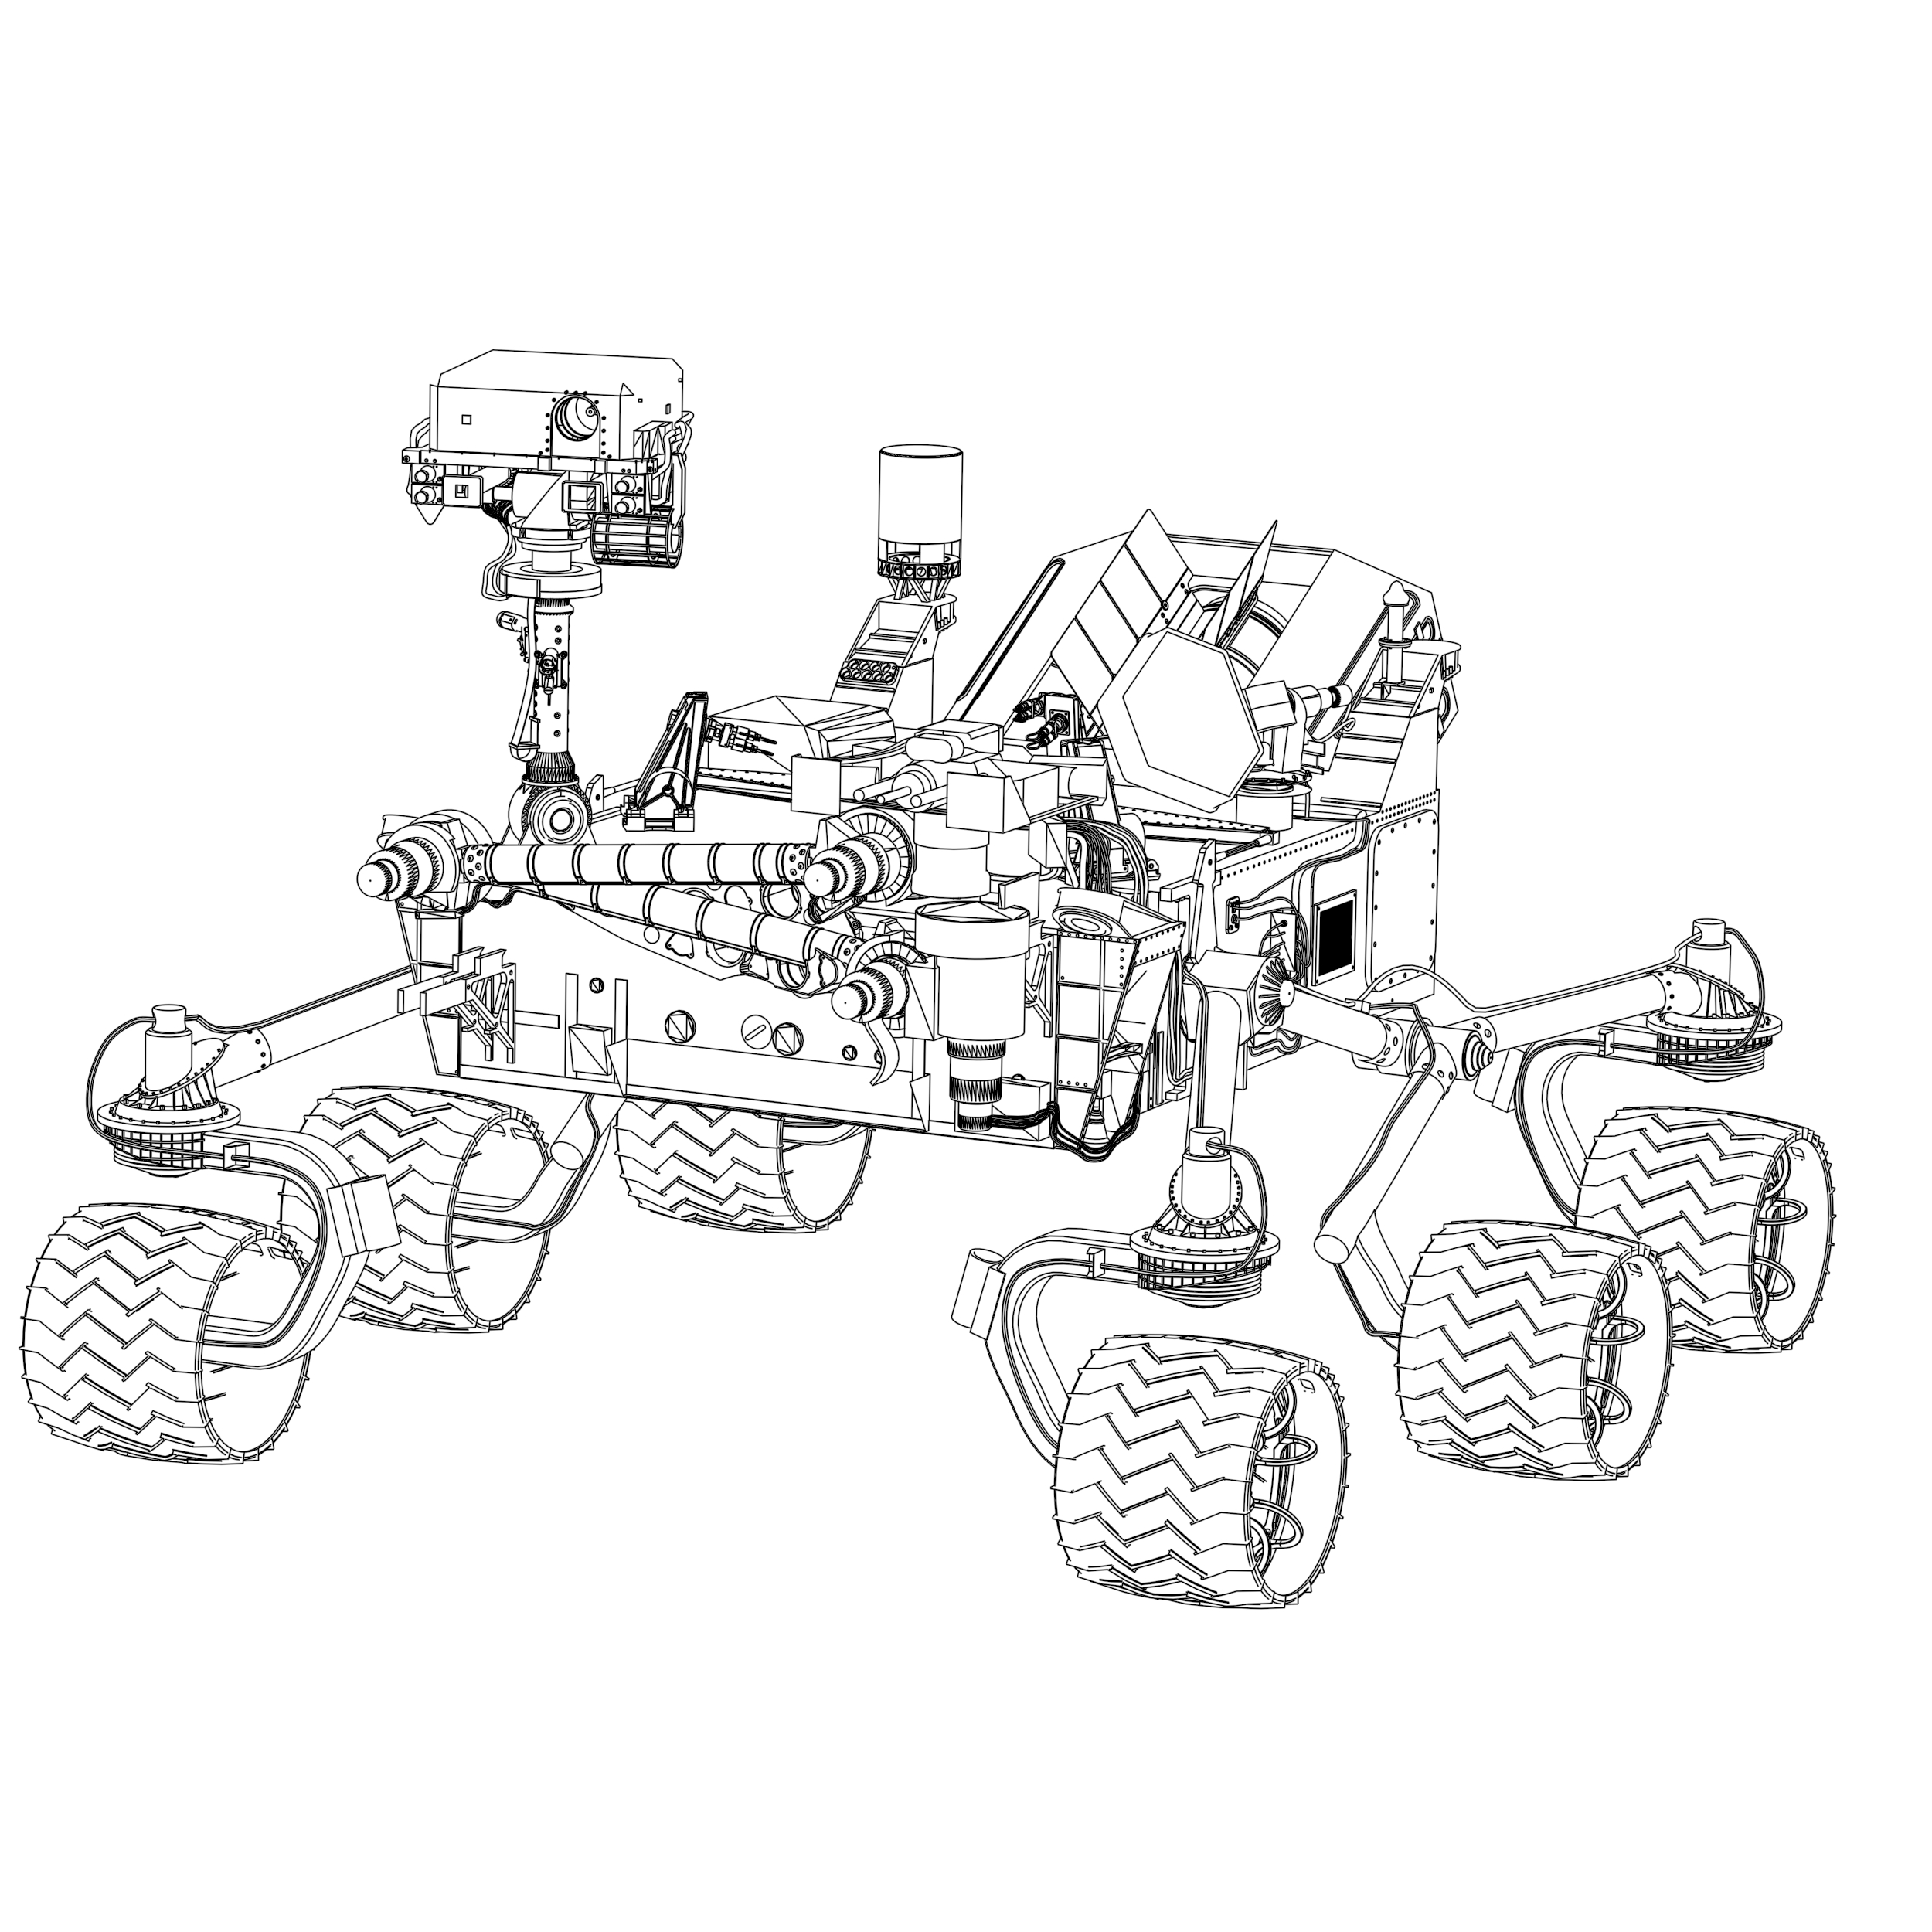 mars curiosity rover technical drawing - photo #7